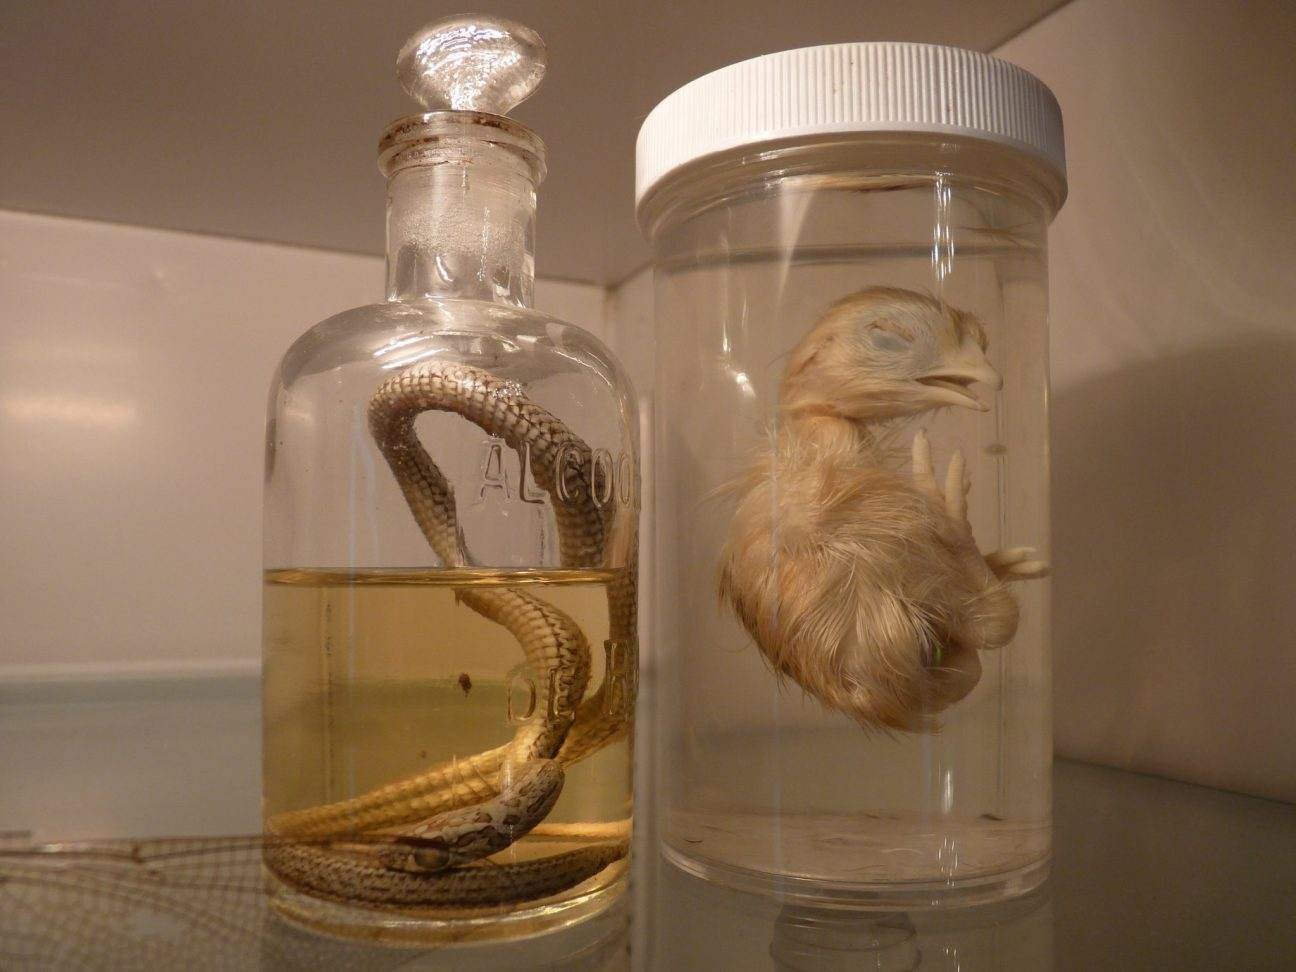 Pickled Snake and Chicken At The Morbid Anatomy Museum - Gowanus Brooklyn